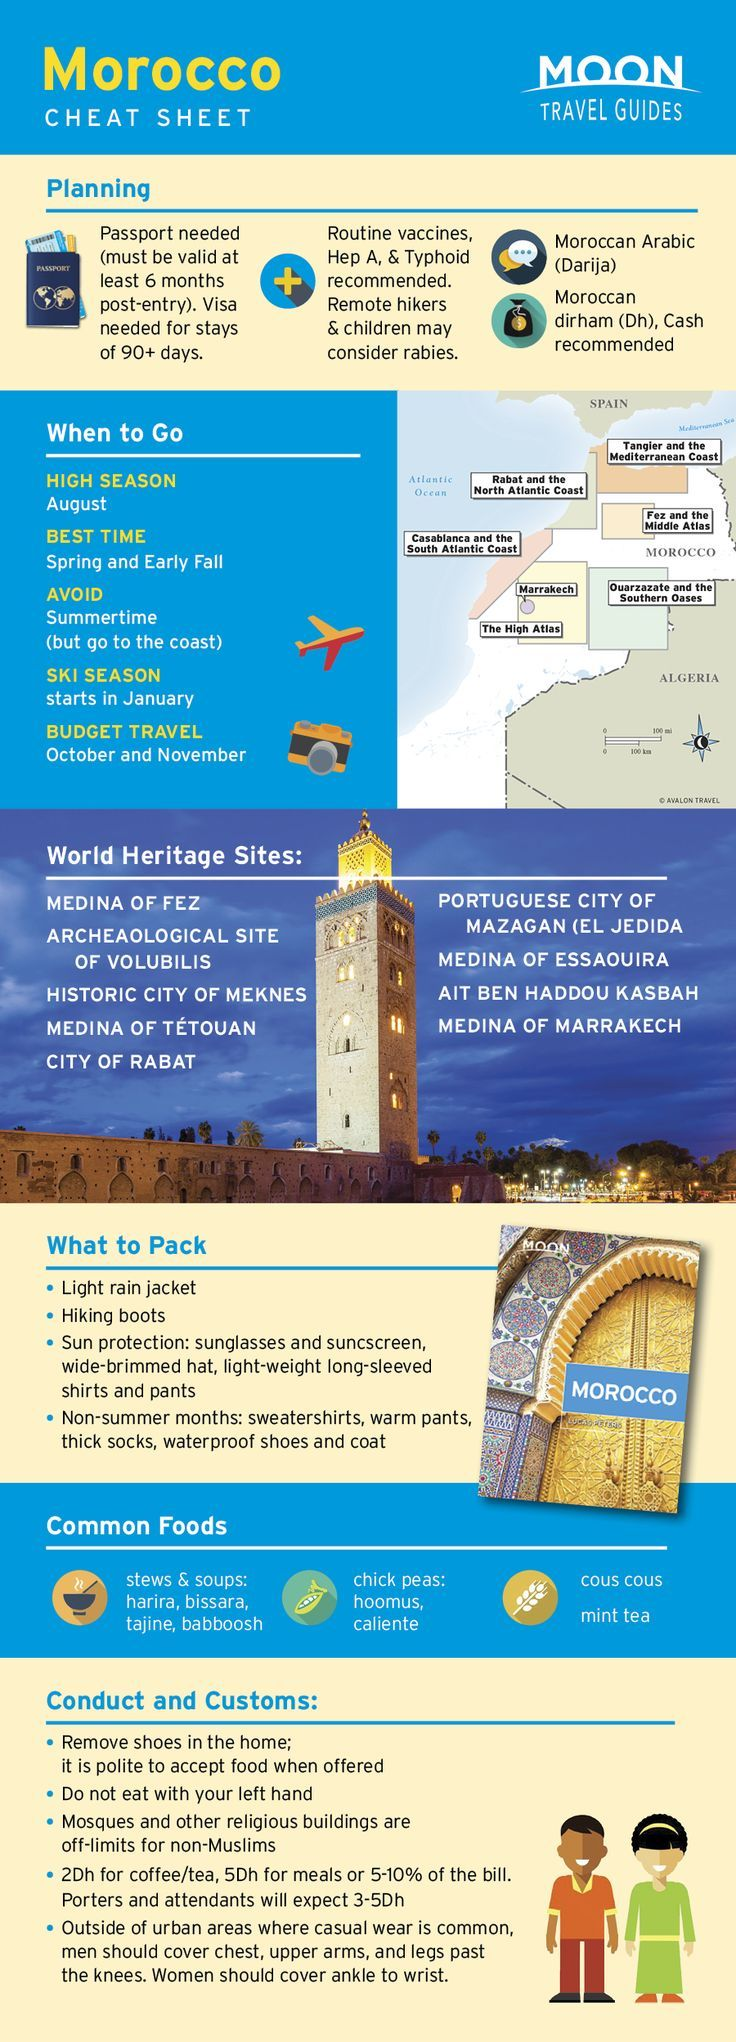 Planning a Morocco vacation? Get started with this handy cheat sheet which tells you when to go, where to go, and how to prepare! Once you're ready to dig deeper, check out the Moon Morocco travel guide for travel itineraries and maps.